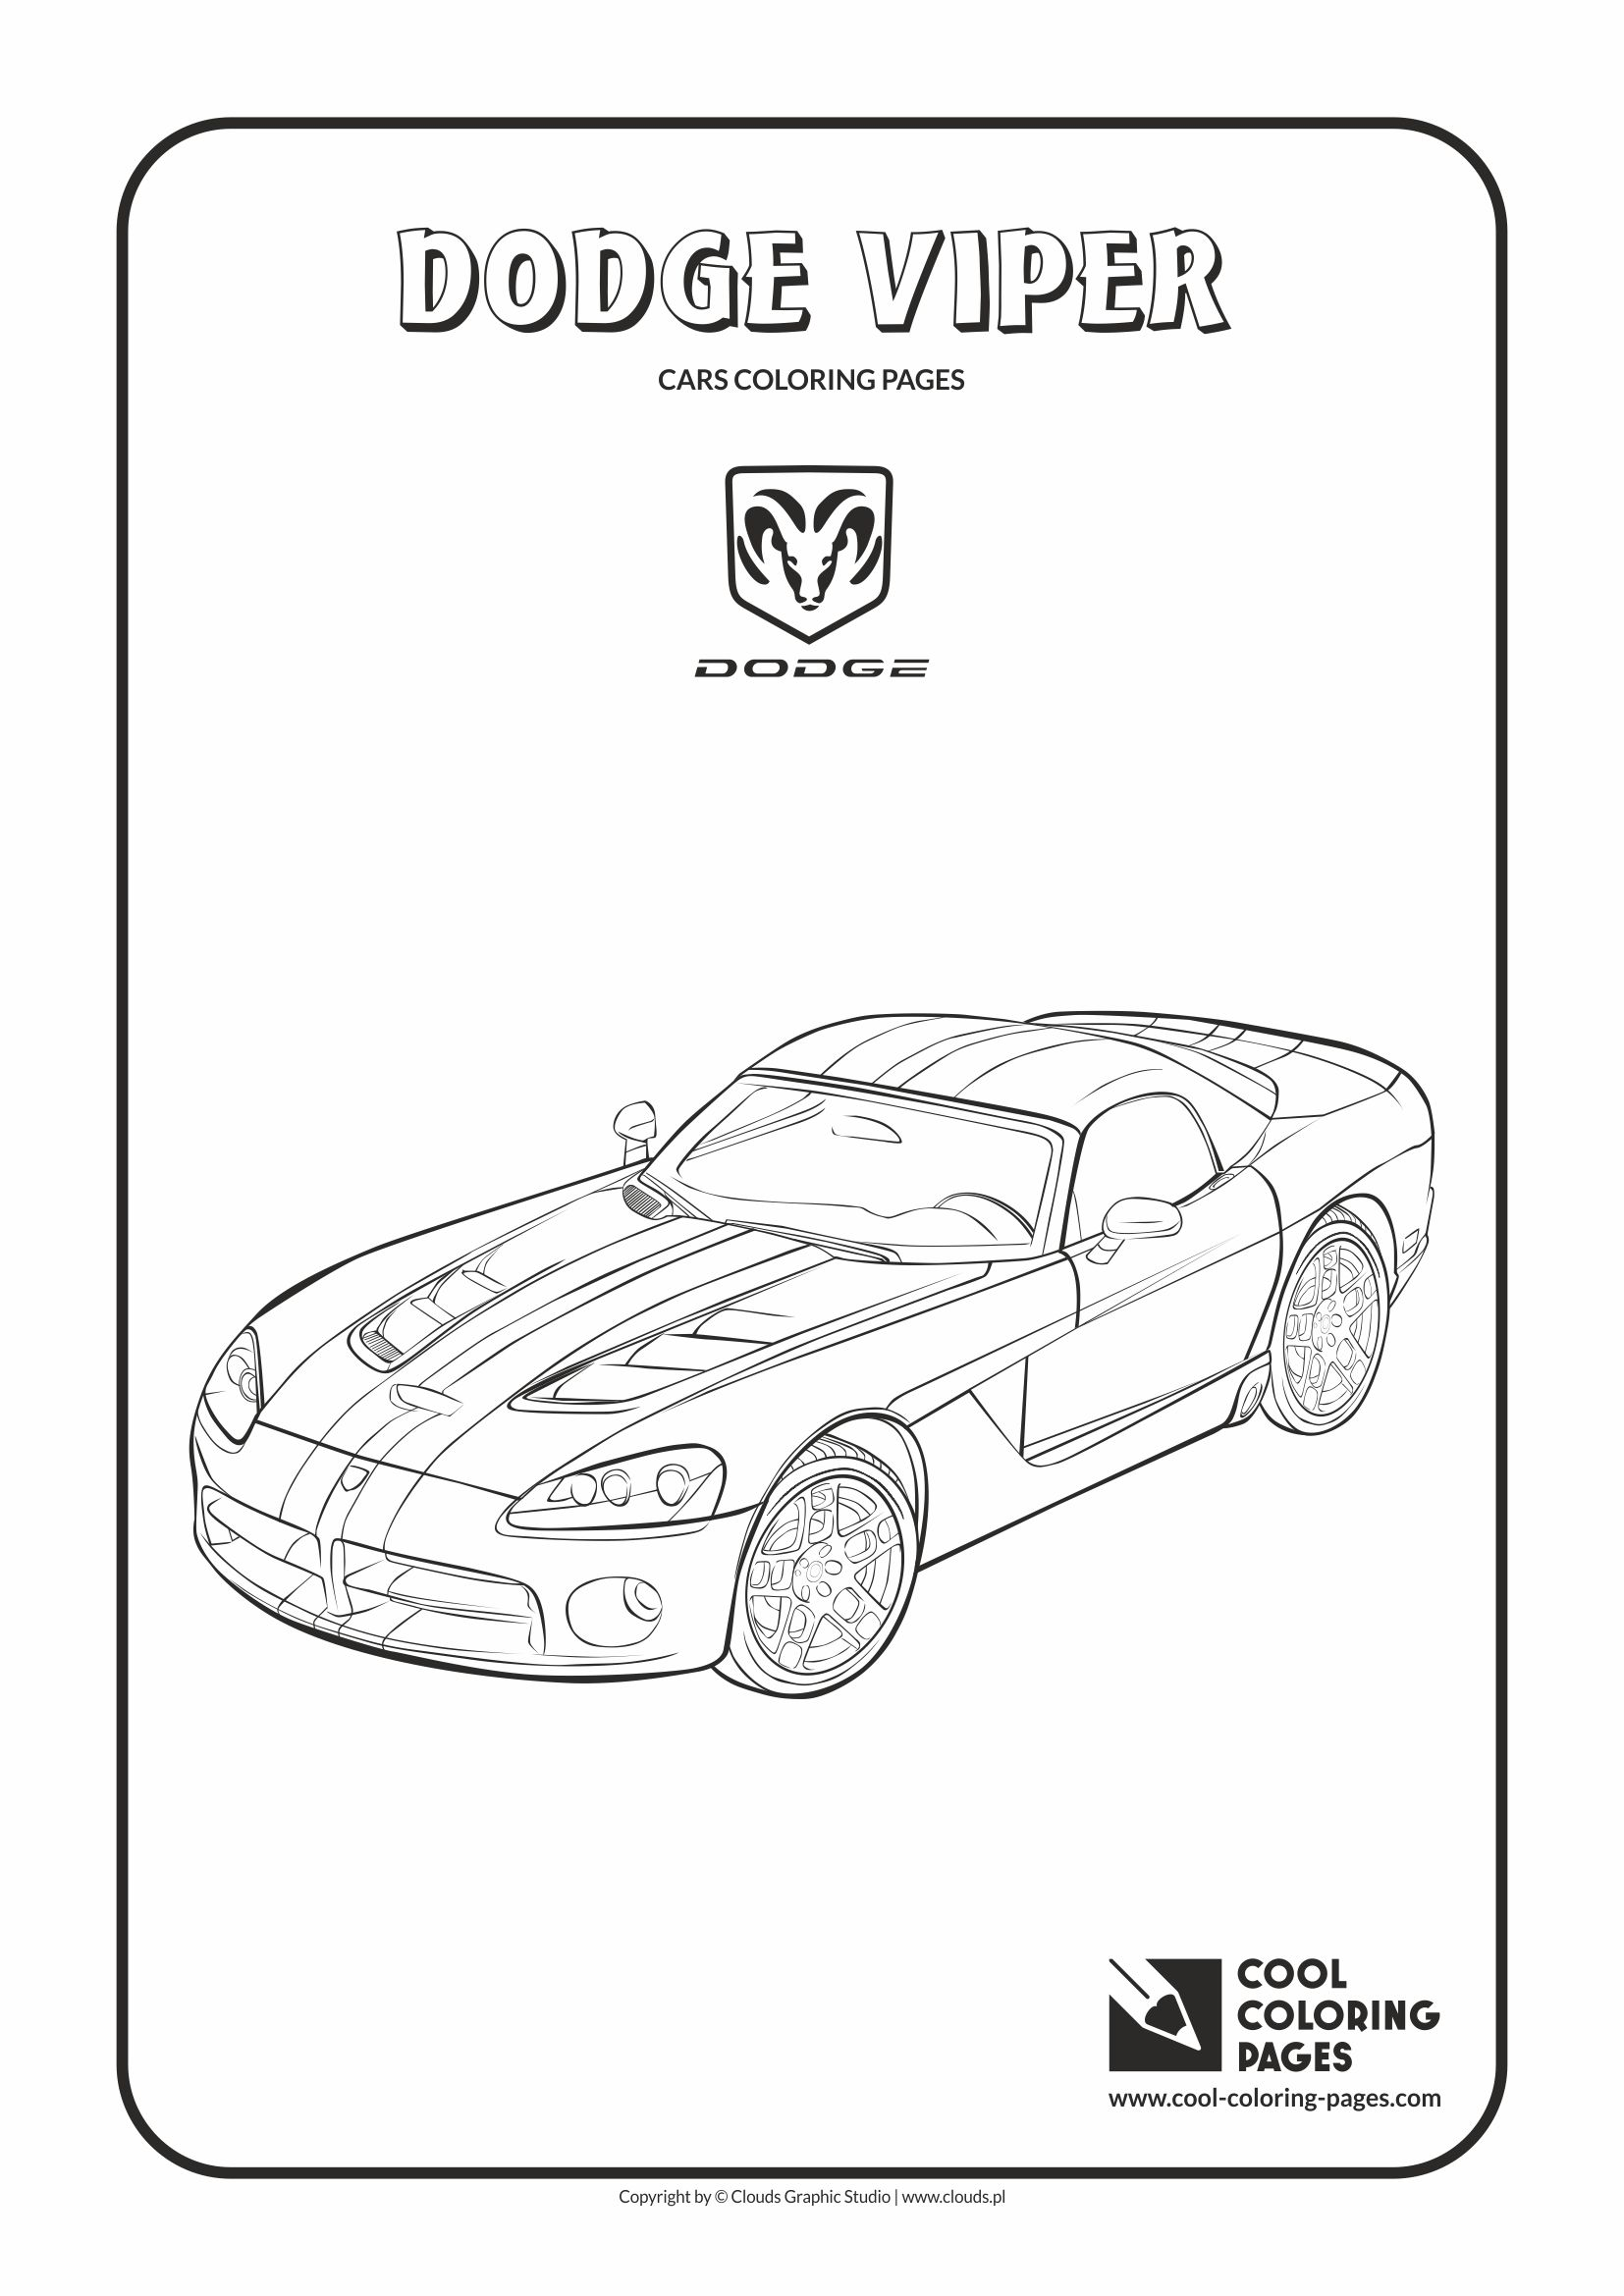 Cool Coloring Pages Cars coloring pages Cool Coloring Pages Free